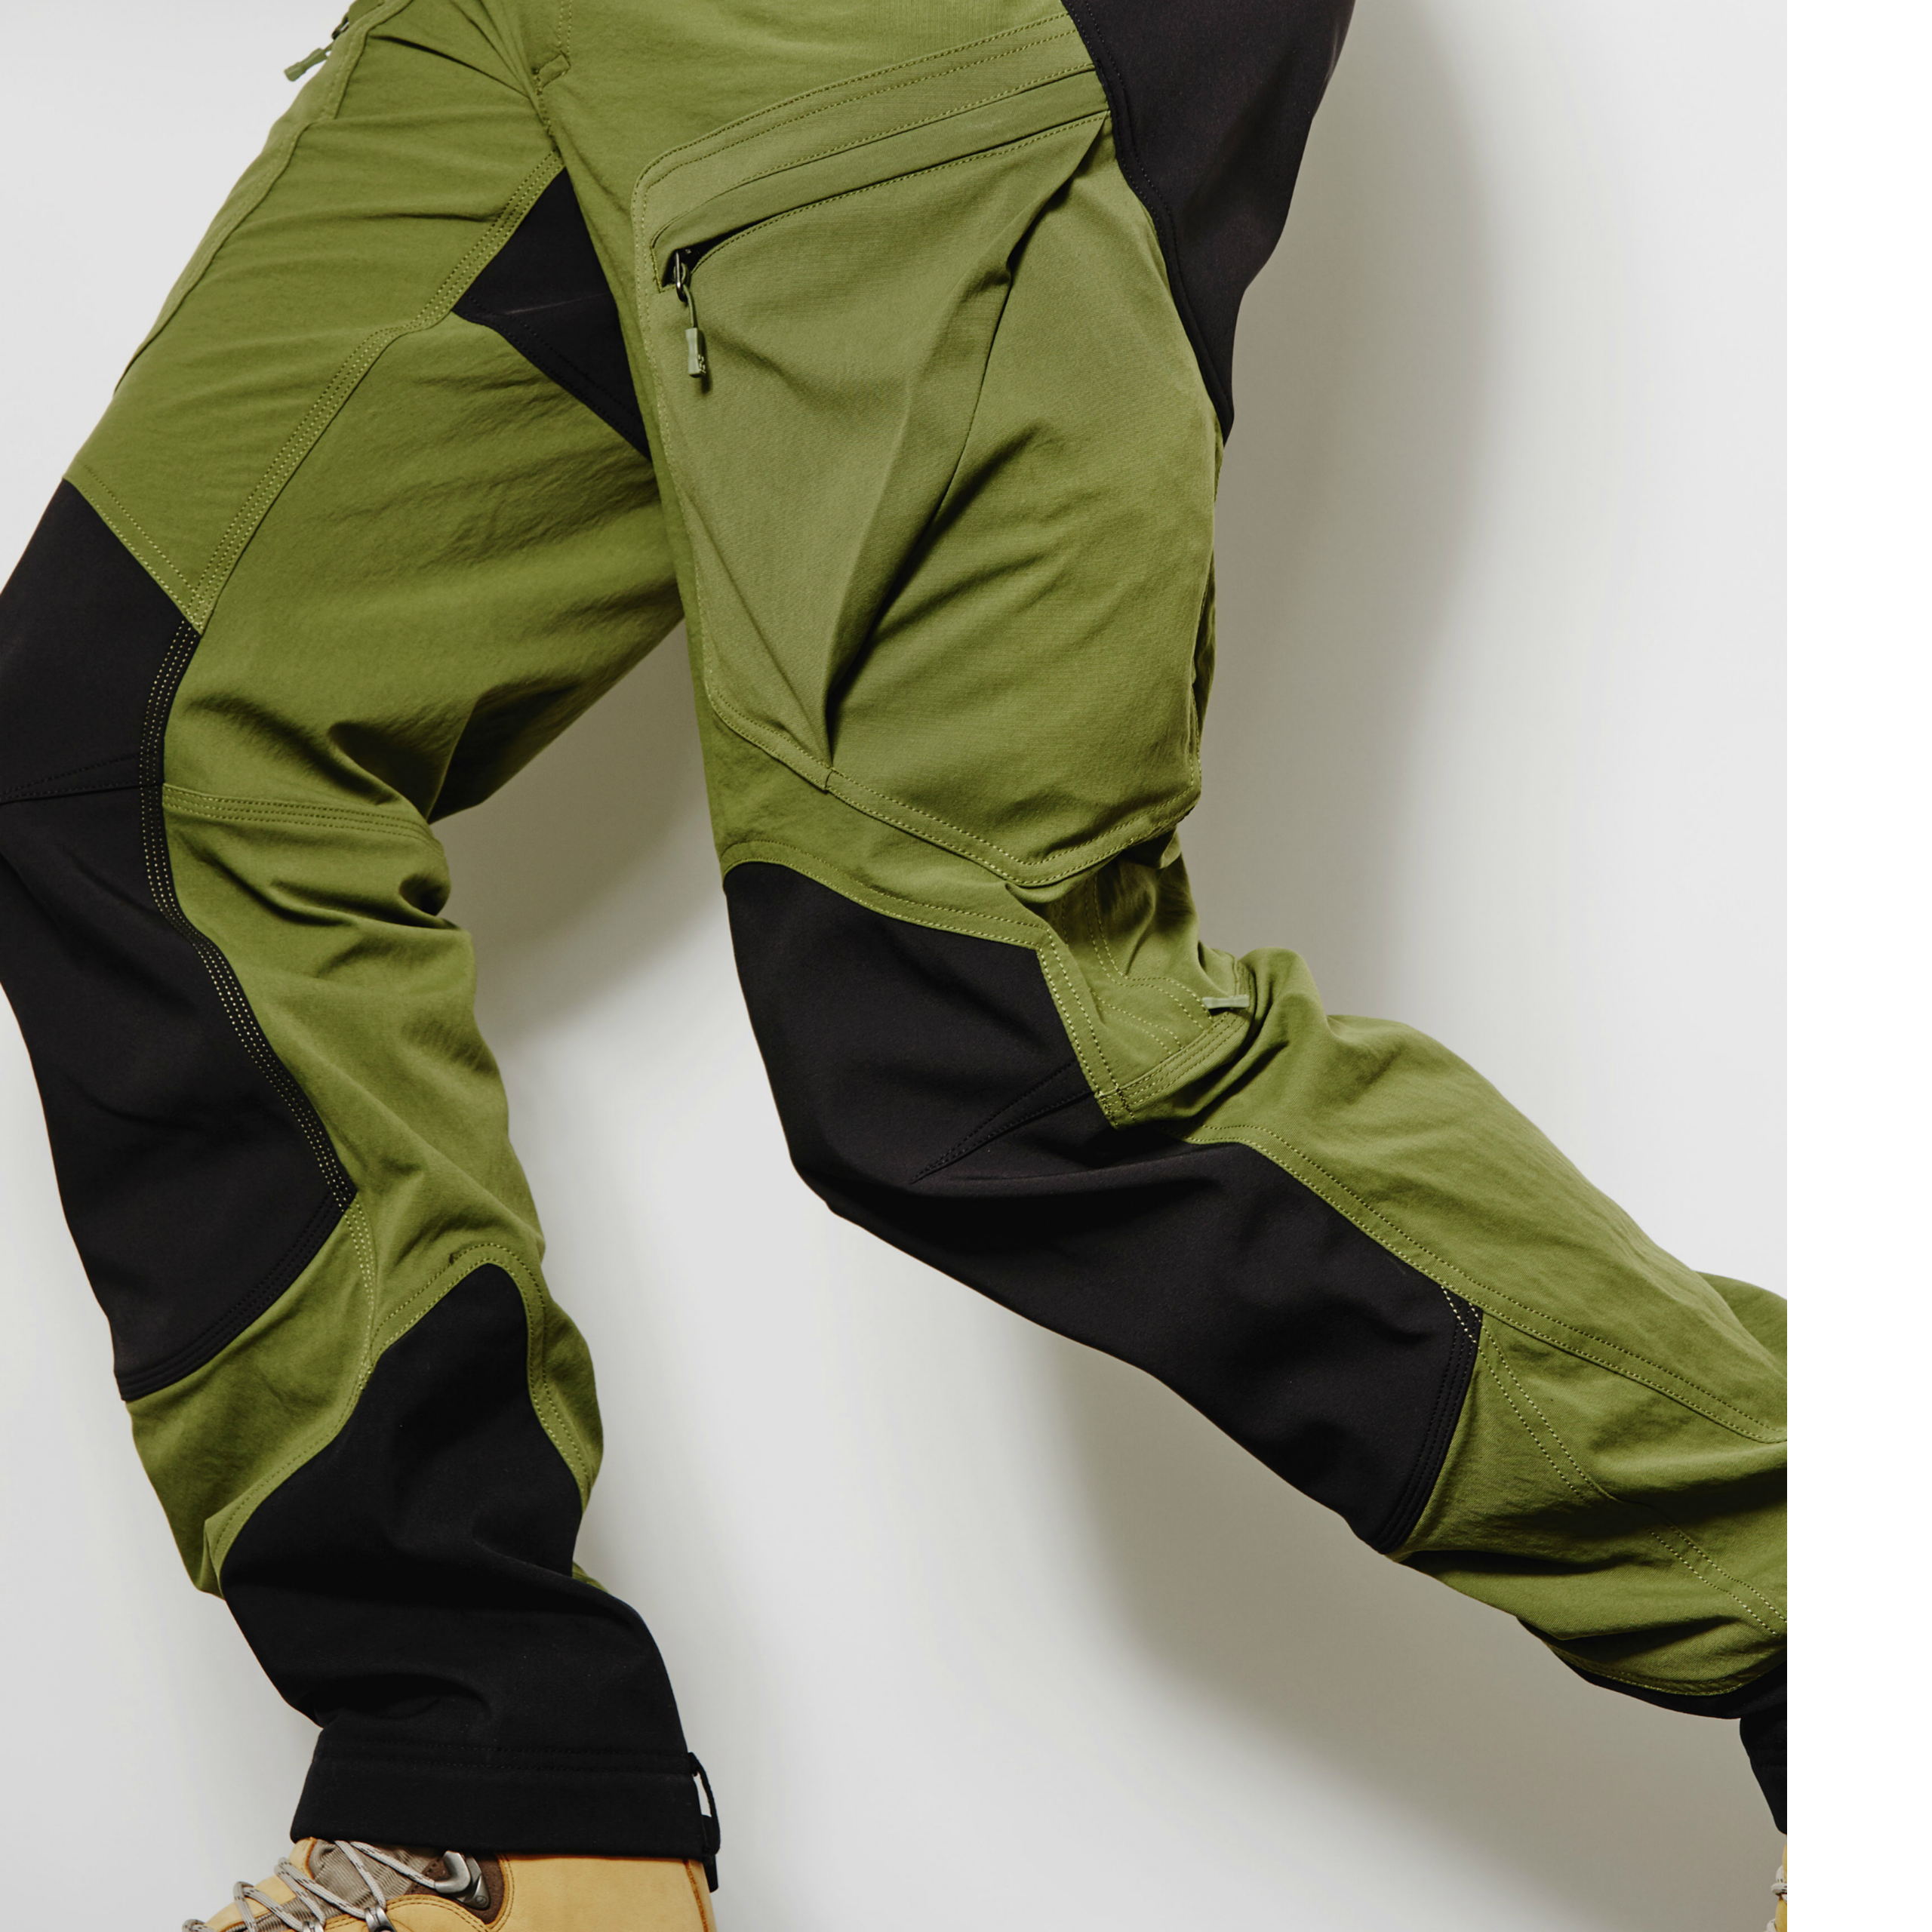 RUGGED II MOUNTAIN PANT MEN | Haglöfs